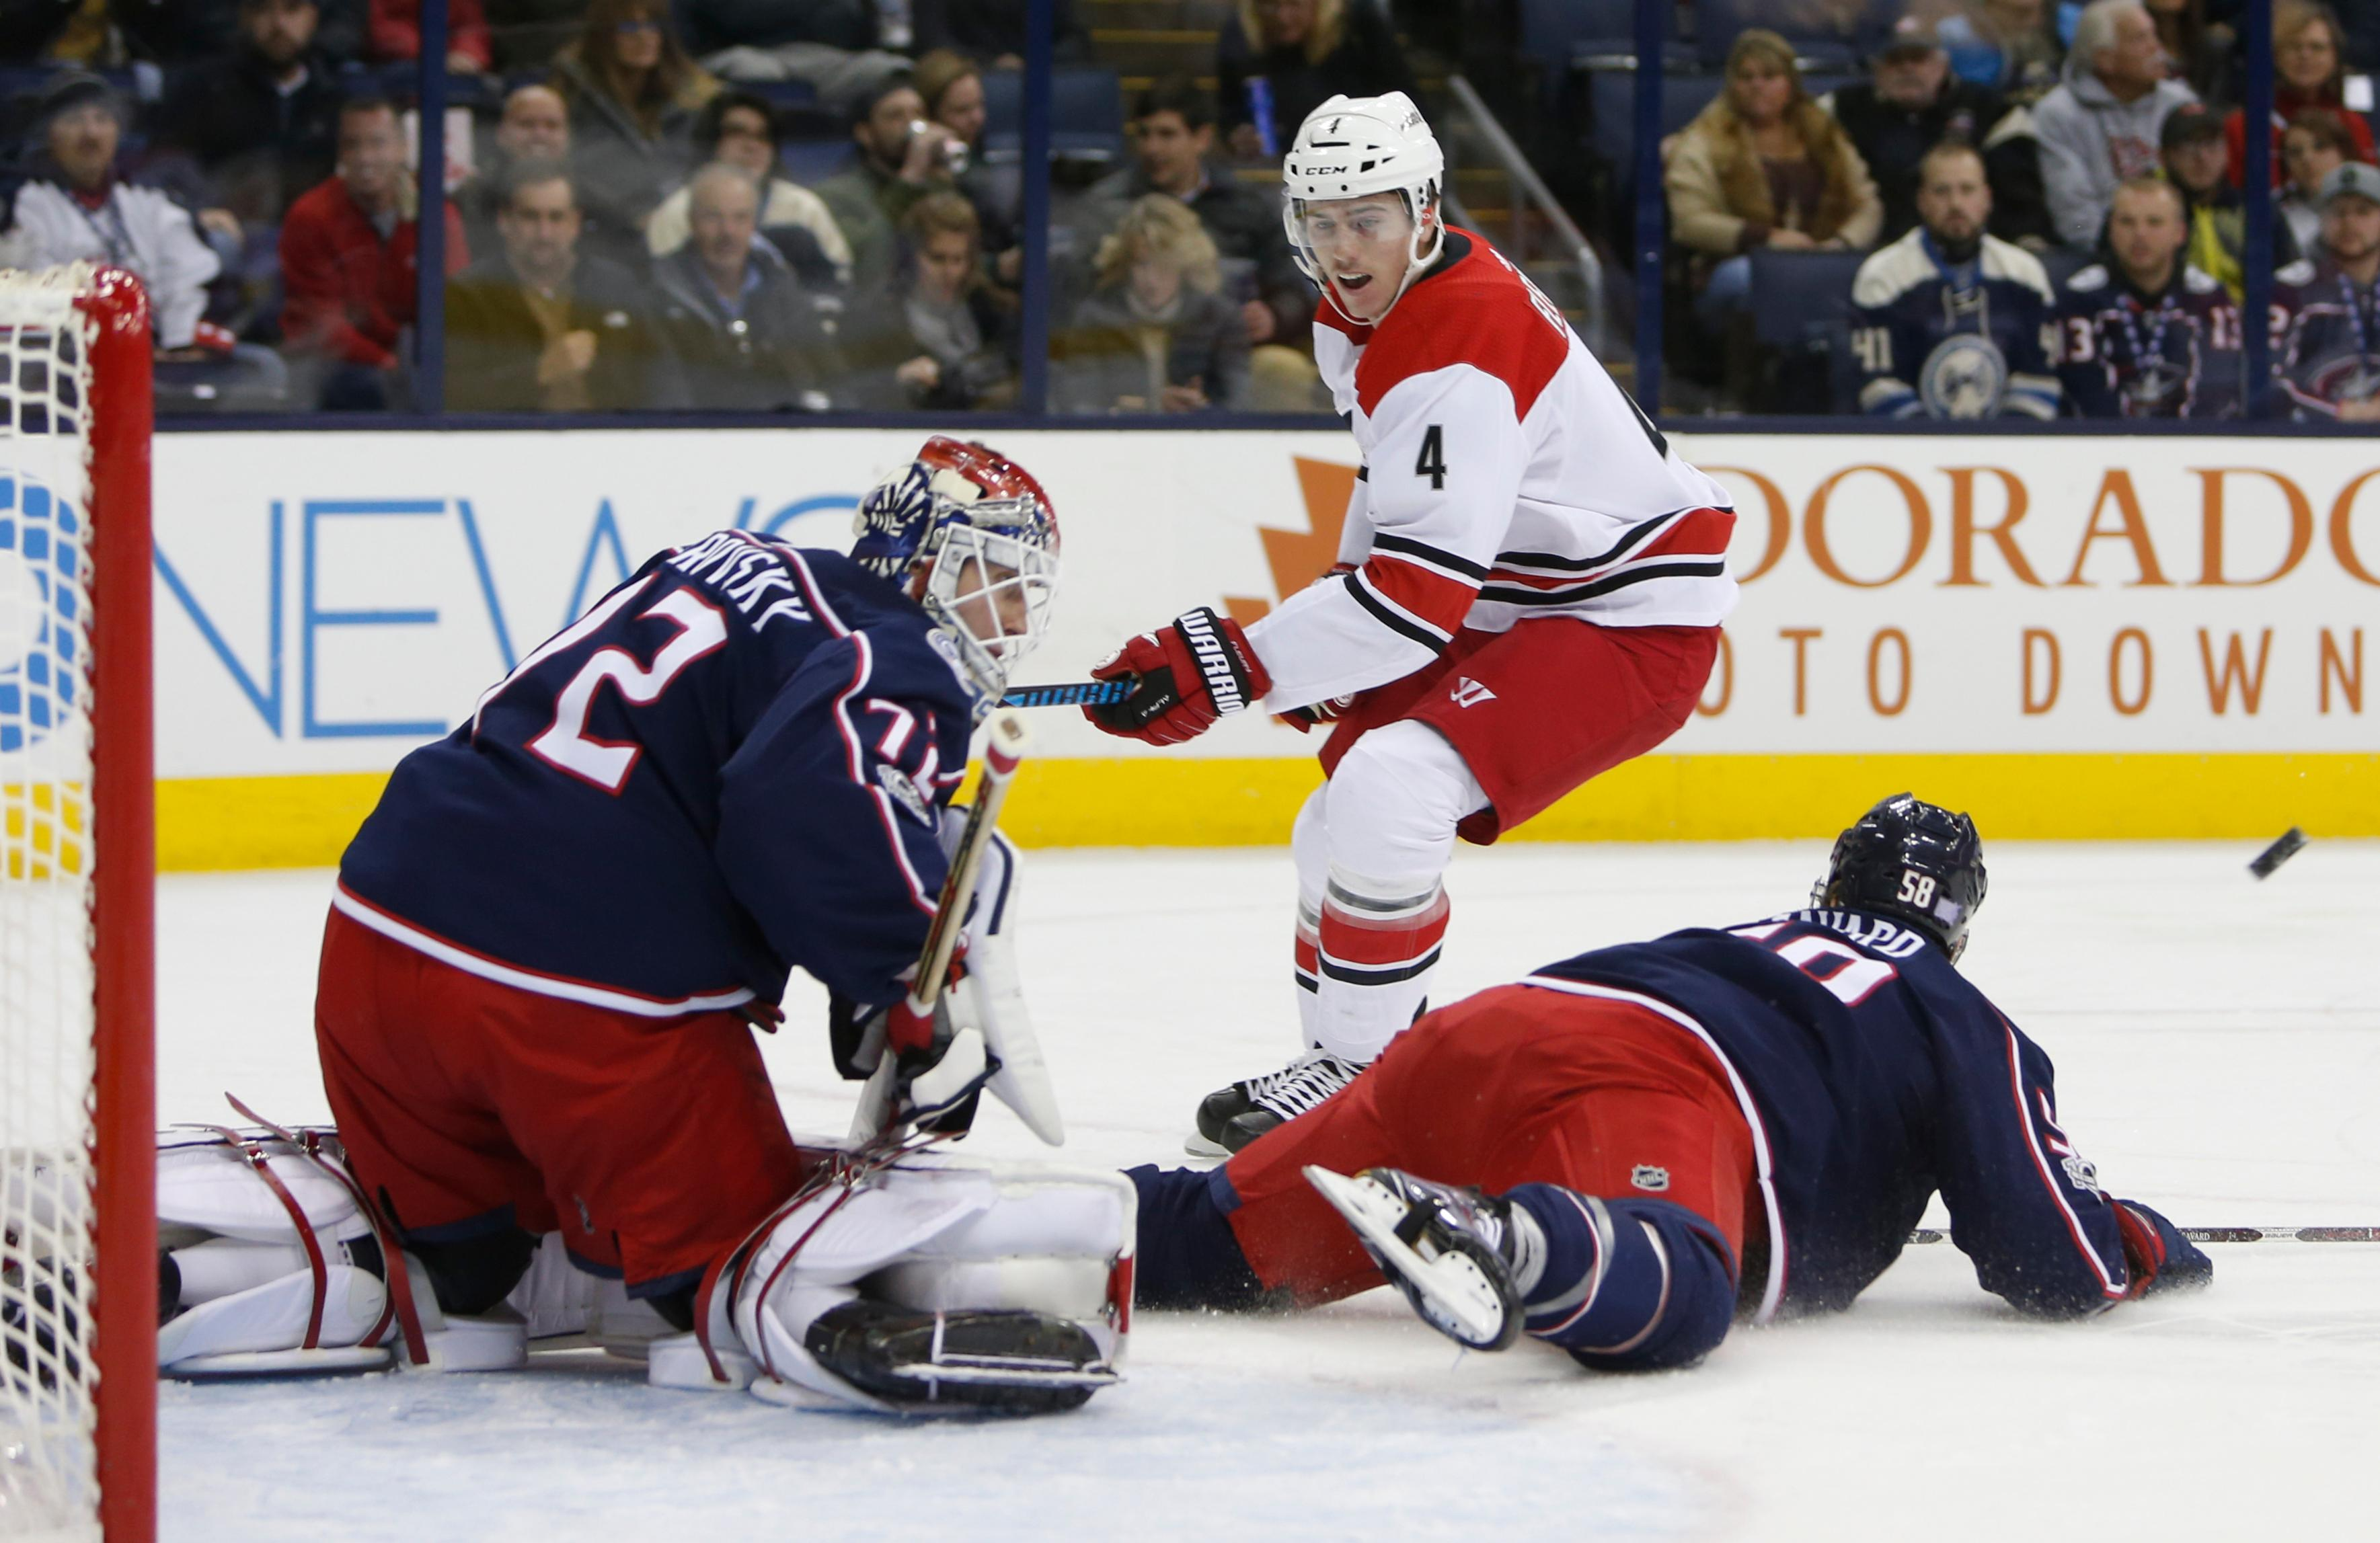 Columbus Blue Jackets' Sergei Bobrovsky, left, of Russia, makes a save as teammate David Savard, right, falls to the ice and Carolina Hurricanes' Haydn Fleury looks for the rebound during the first period of an NHL hockey game Friday, Nov. 10, 2017, in Columbus, Ohio. (AP Photo/Jay LaPrete)